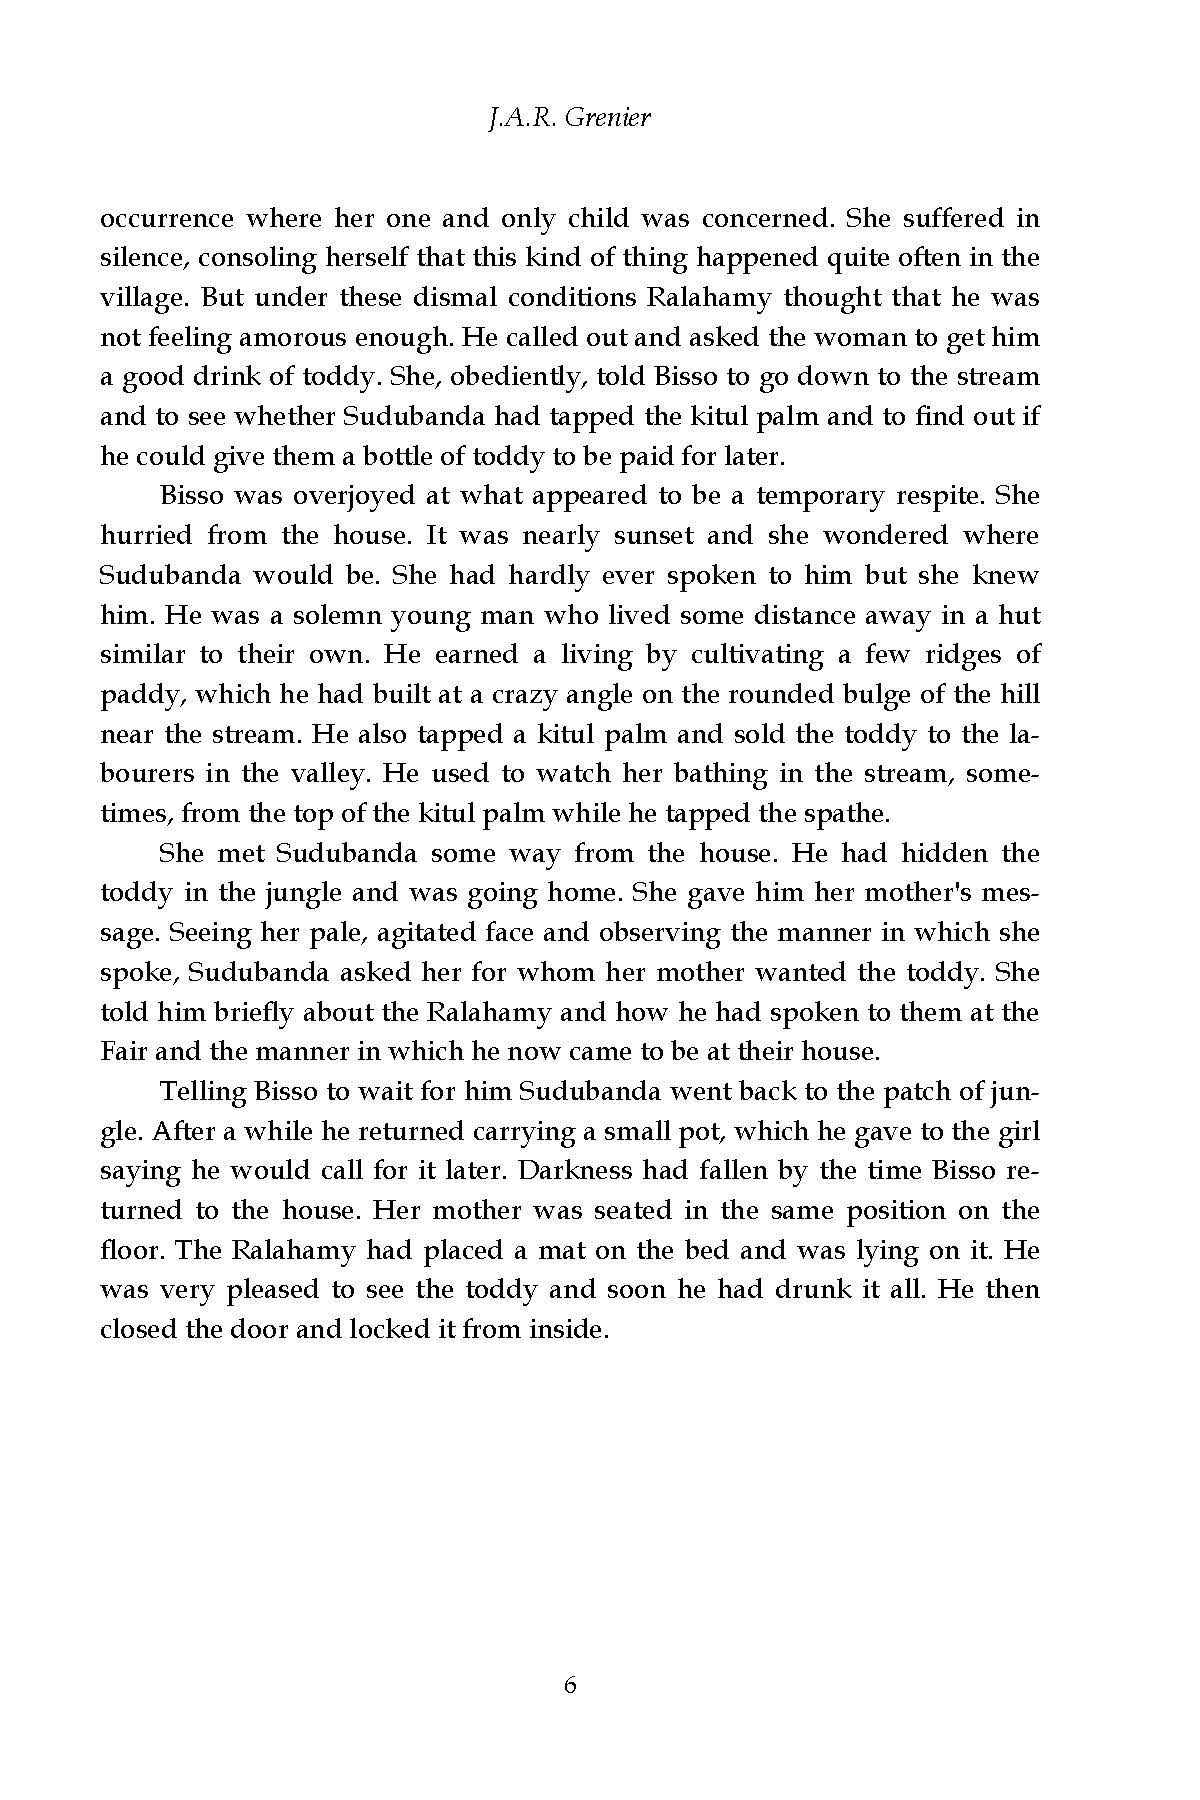 jgre050217 (final text)_Page_08.jpg